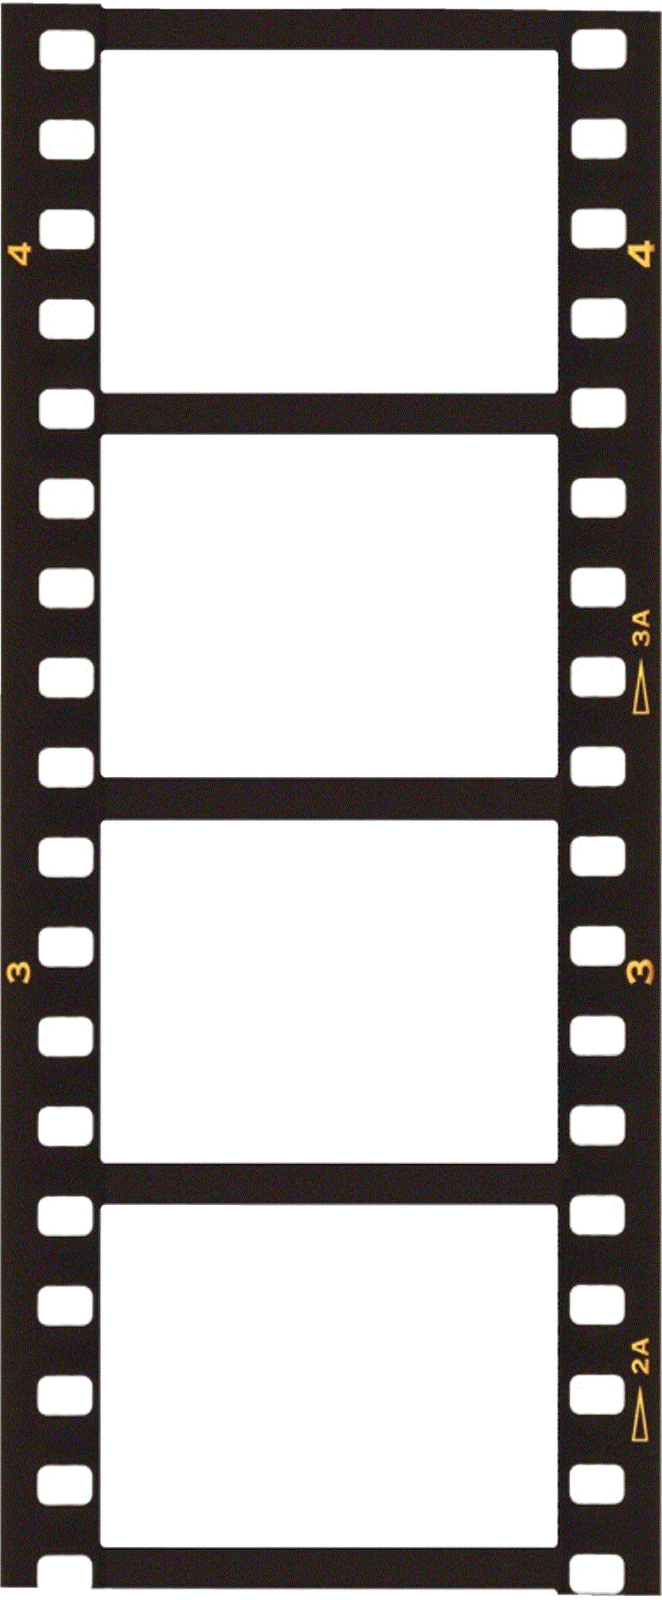 Since strip clear clipart - Clipground